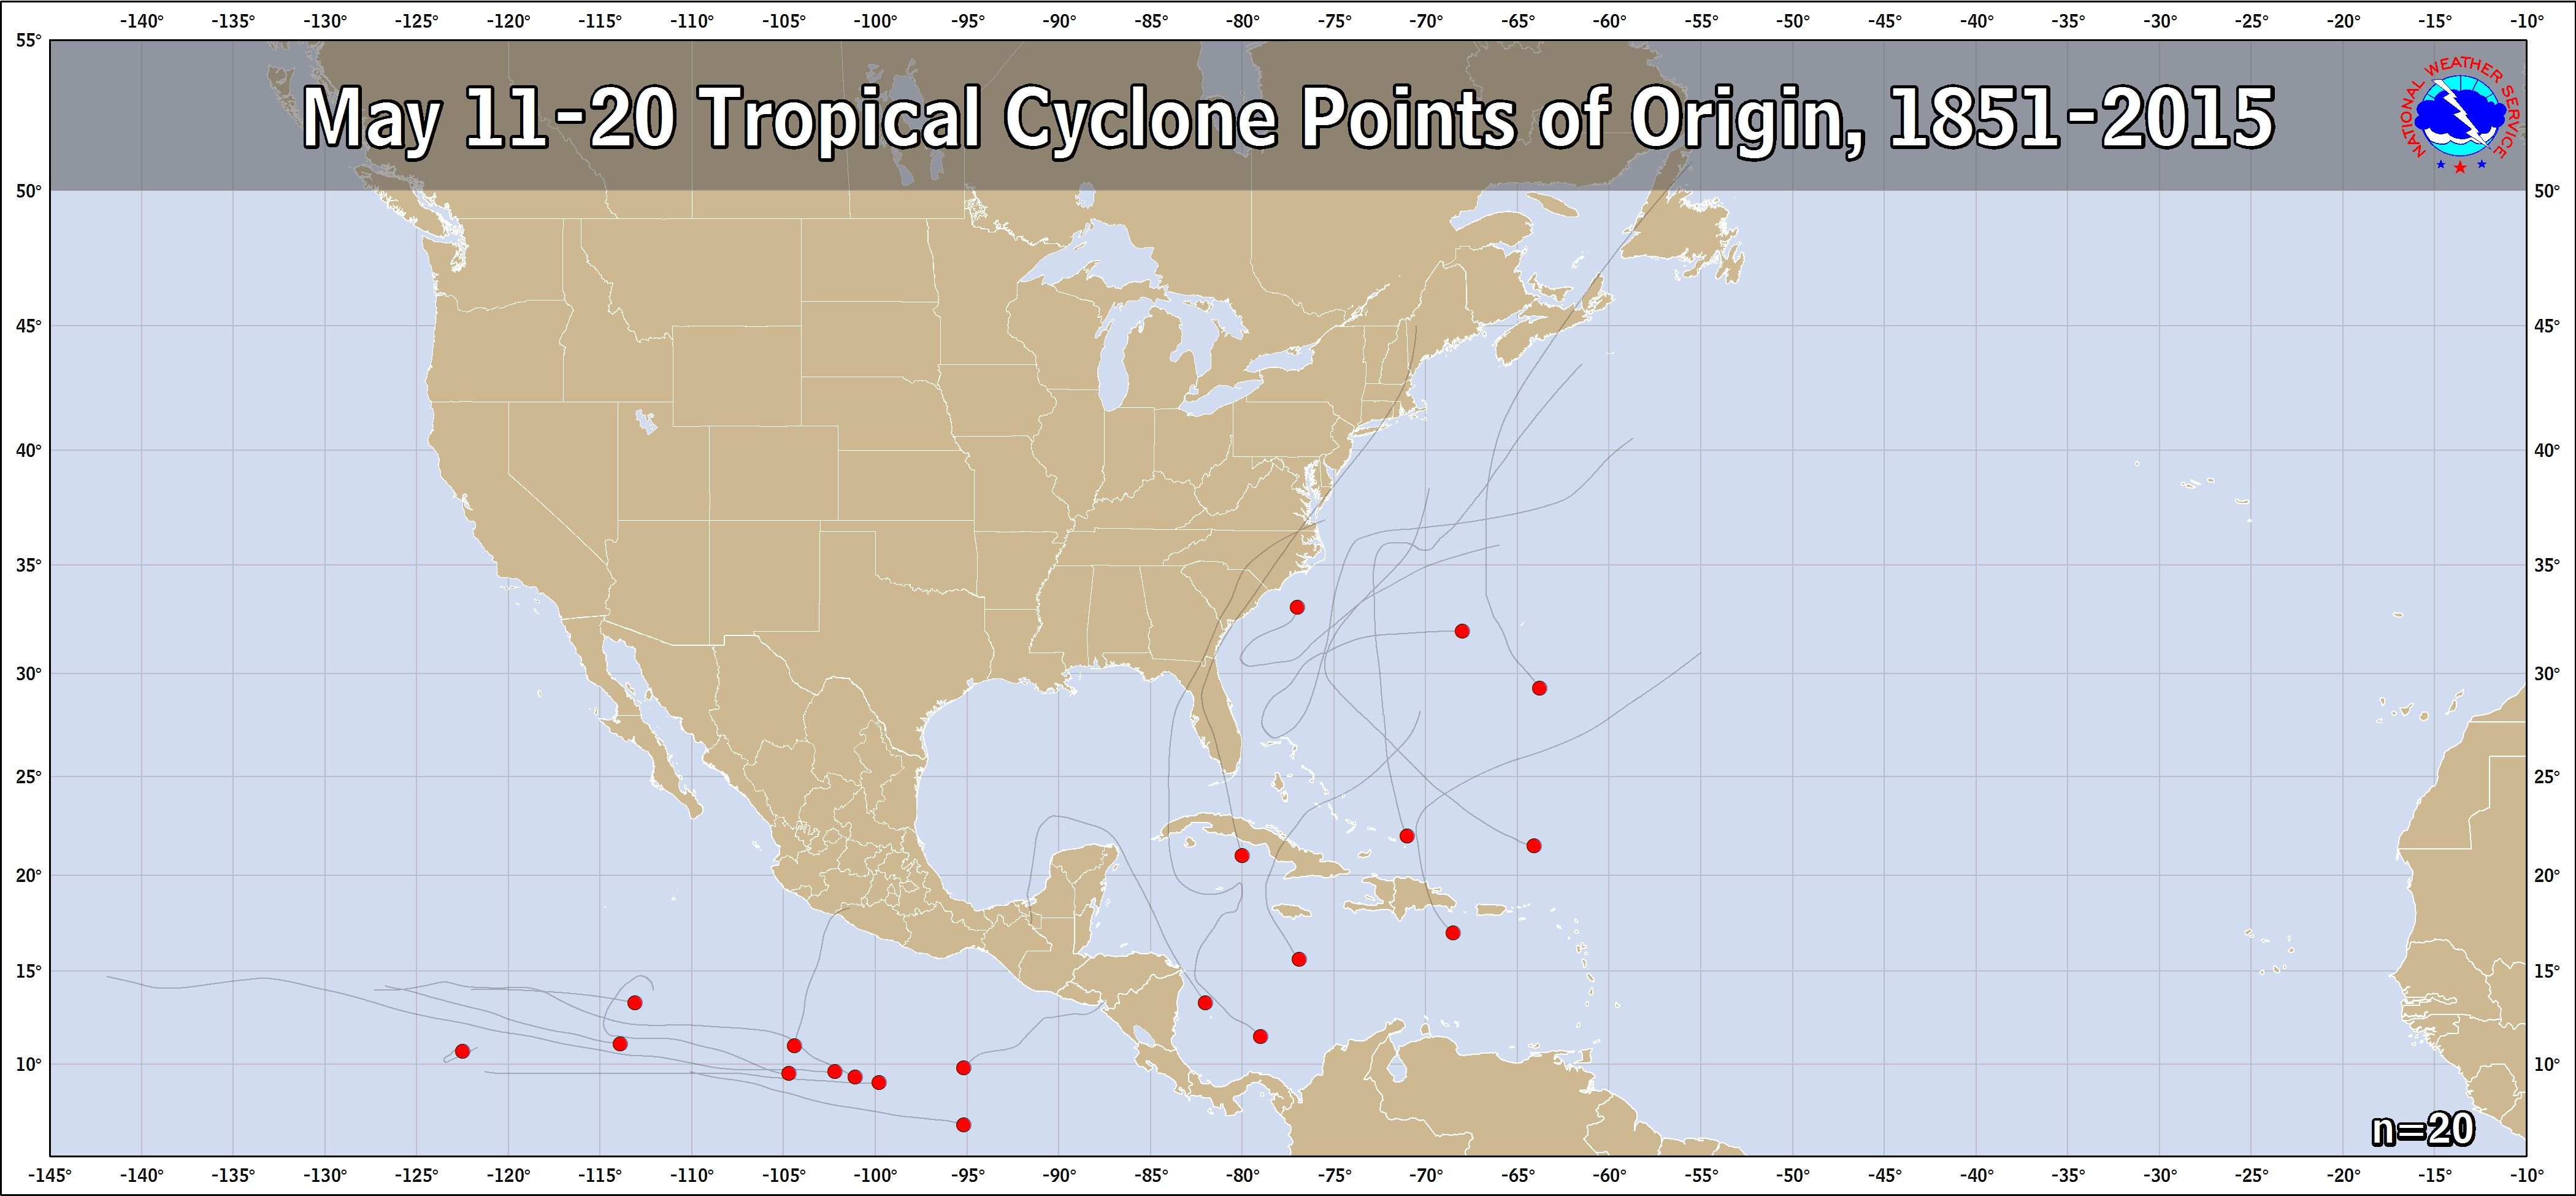 Tropical Cyclone Genesis Climatology